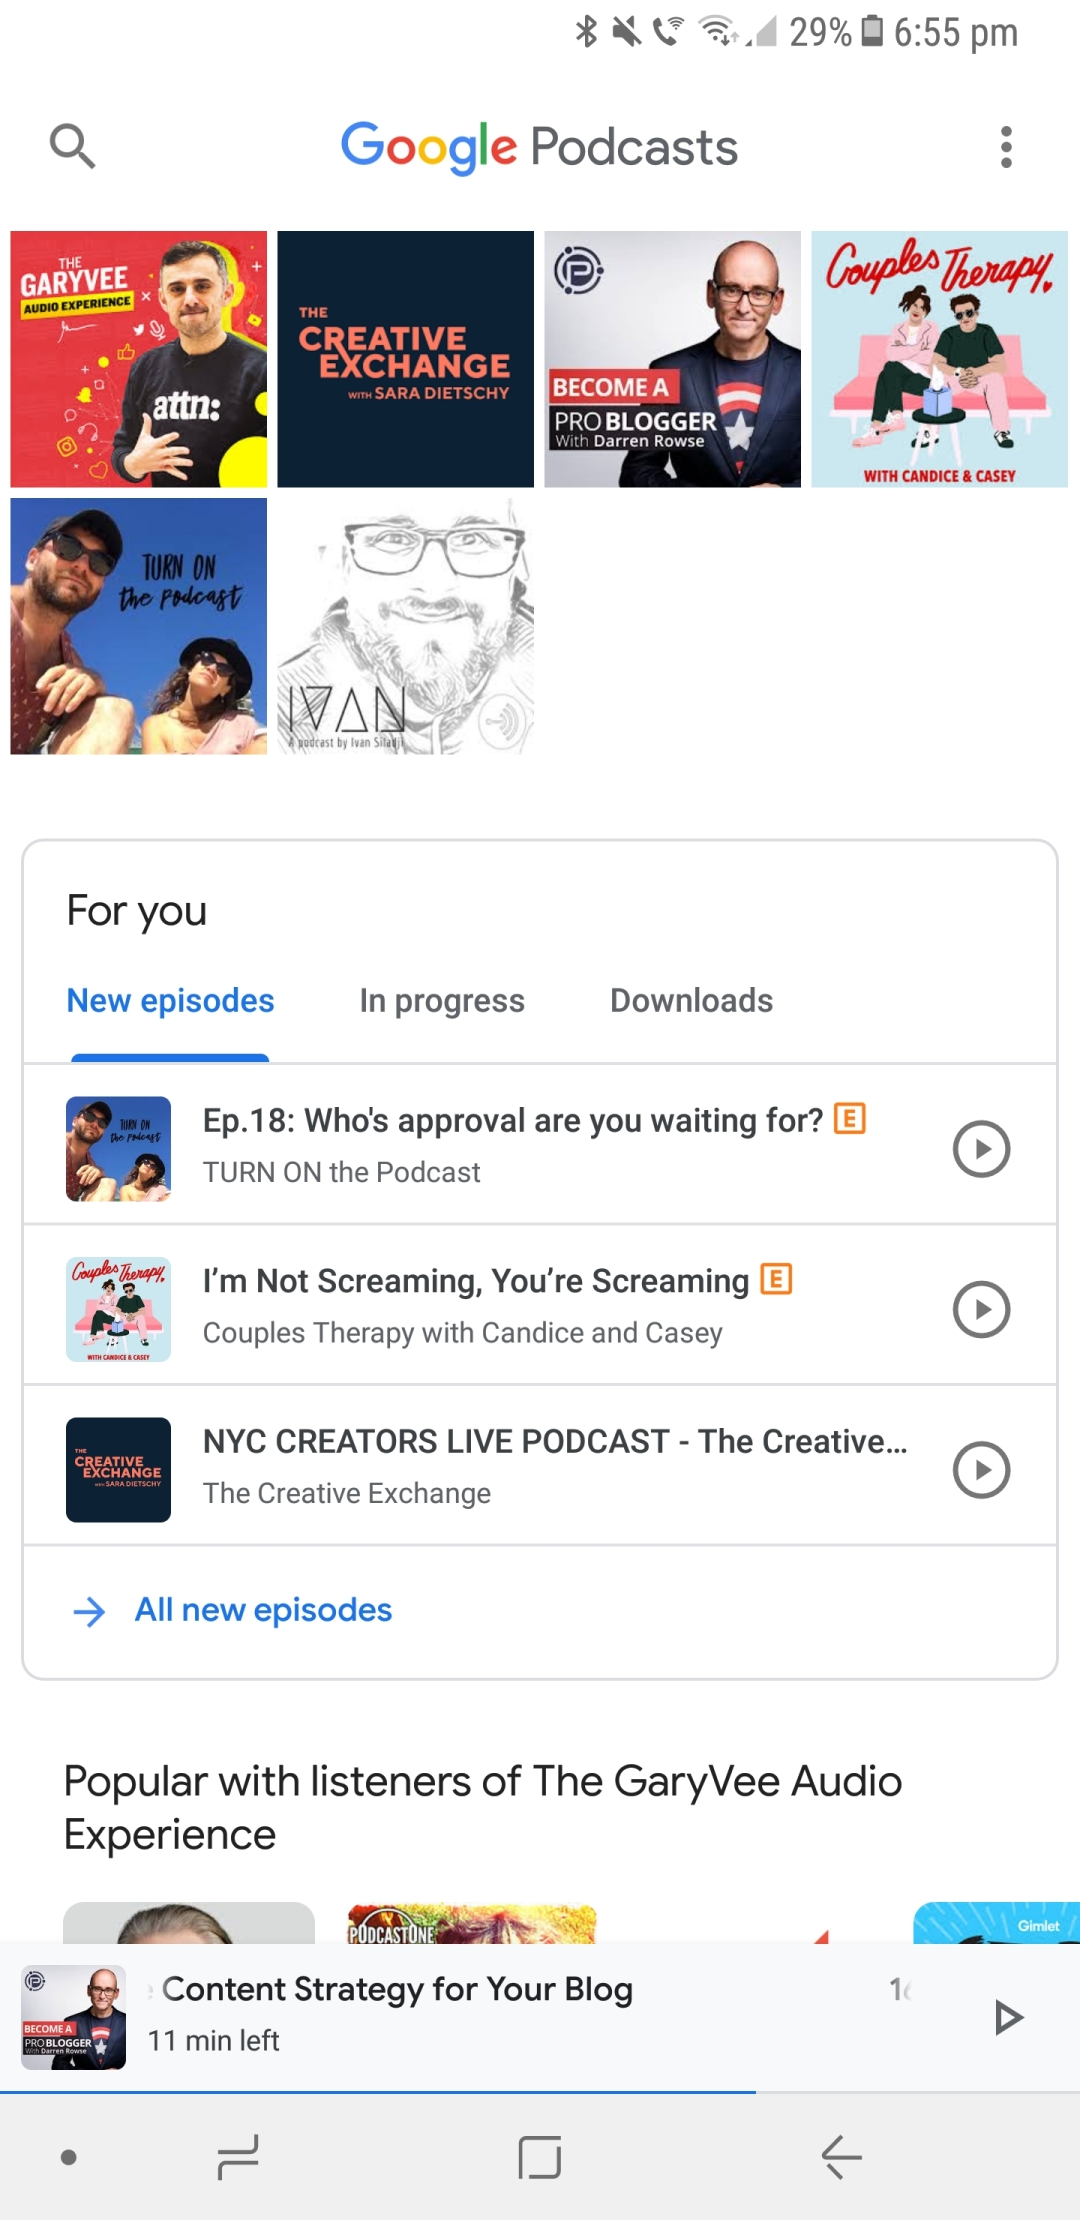 Why the Google Podcasts app is THE BEST podcast app for